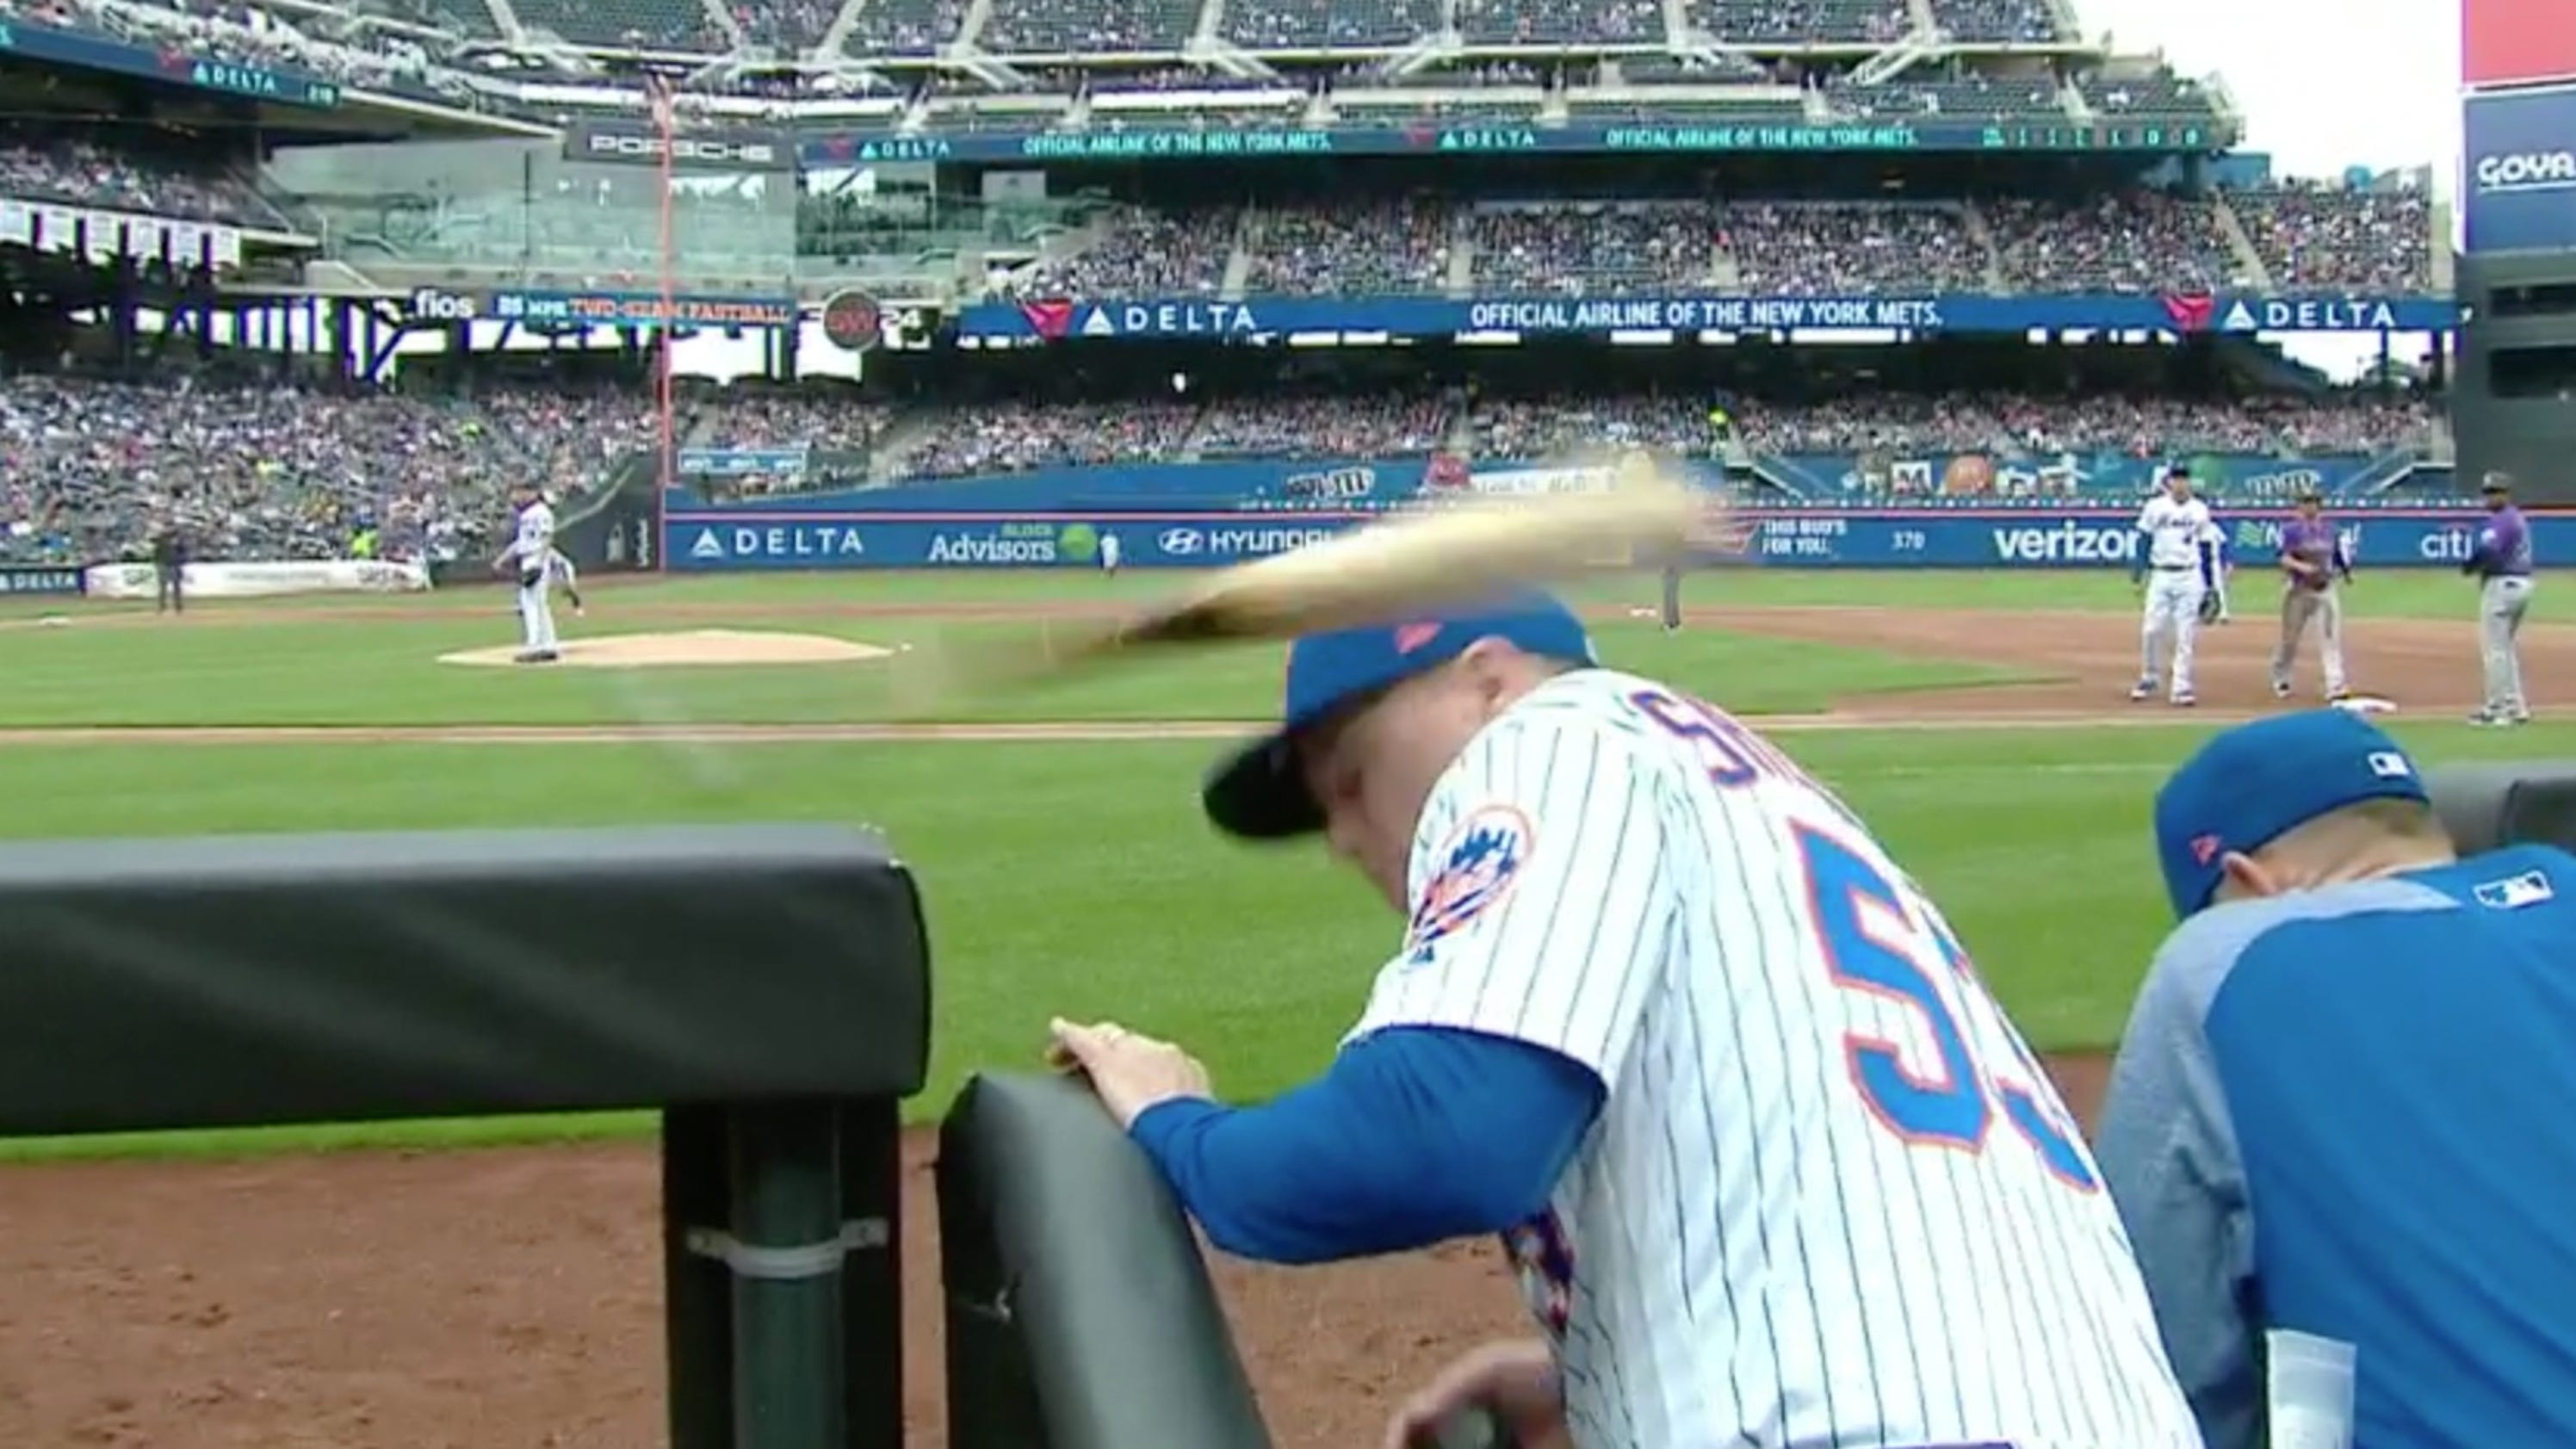 Softball C Screen : Mets coach gets hit by bat in the dugout laughs